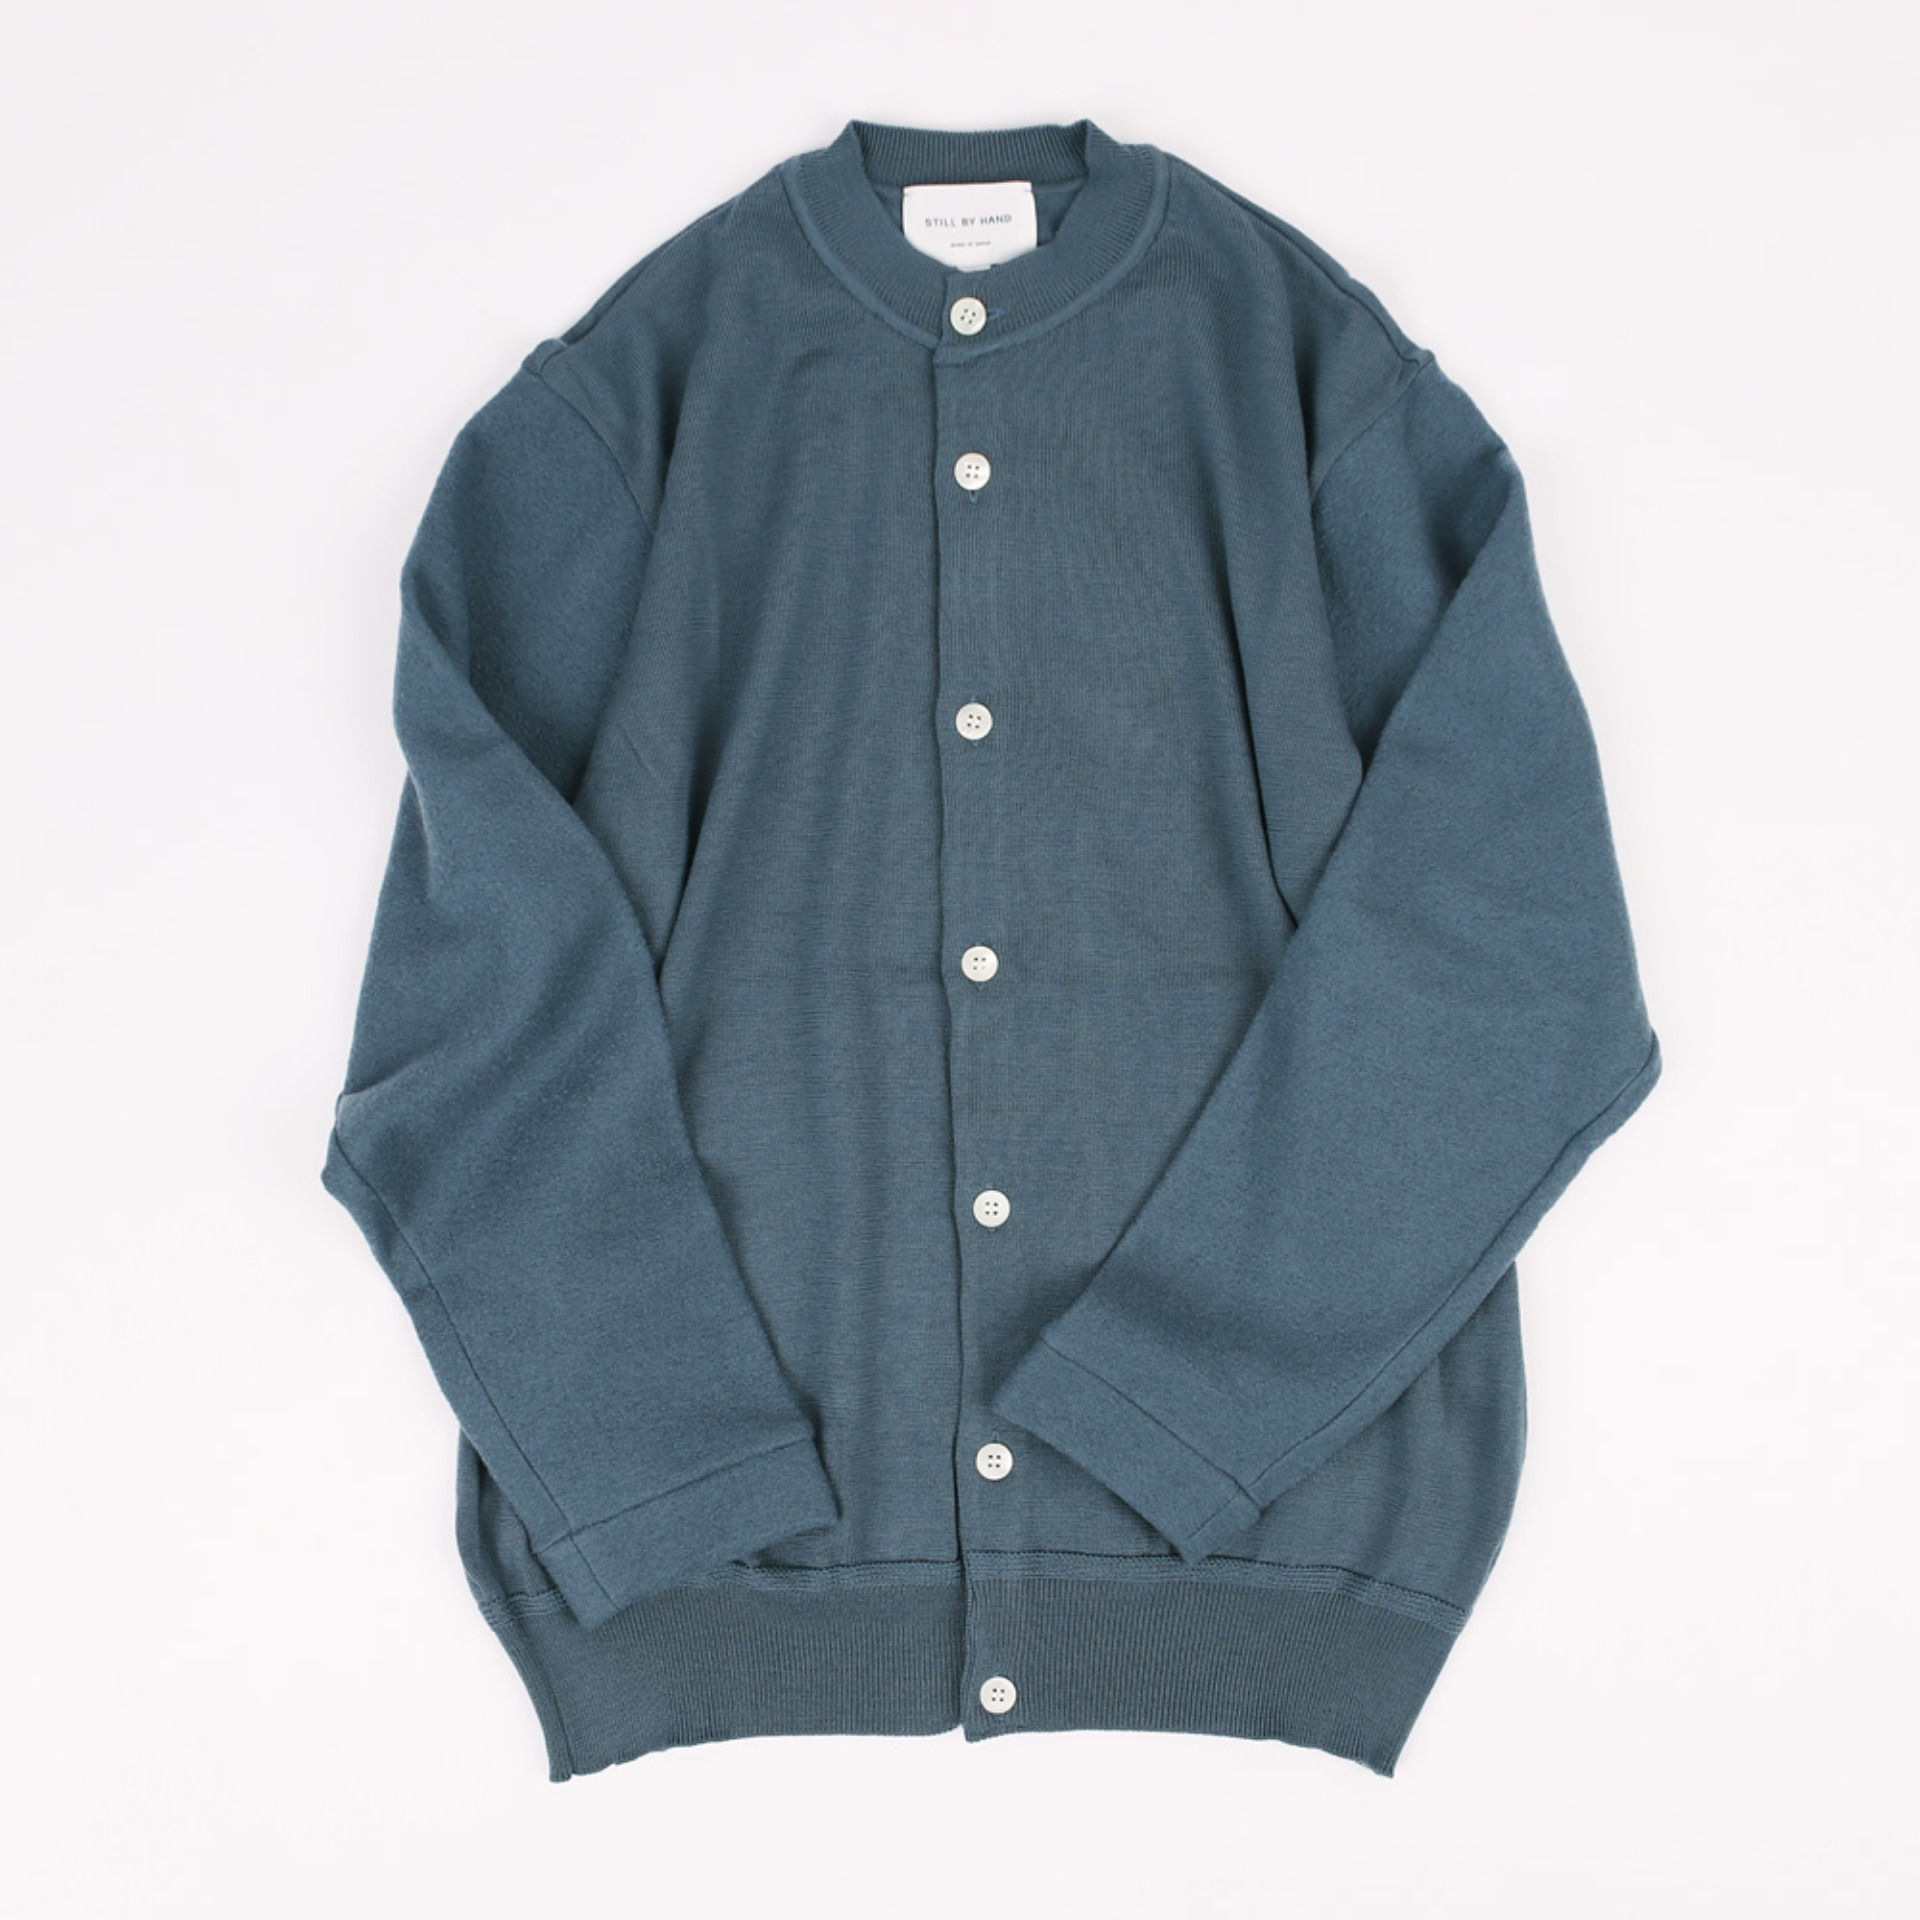 STILL BY HAND CREW NECK CARDIGAN Blue Gray